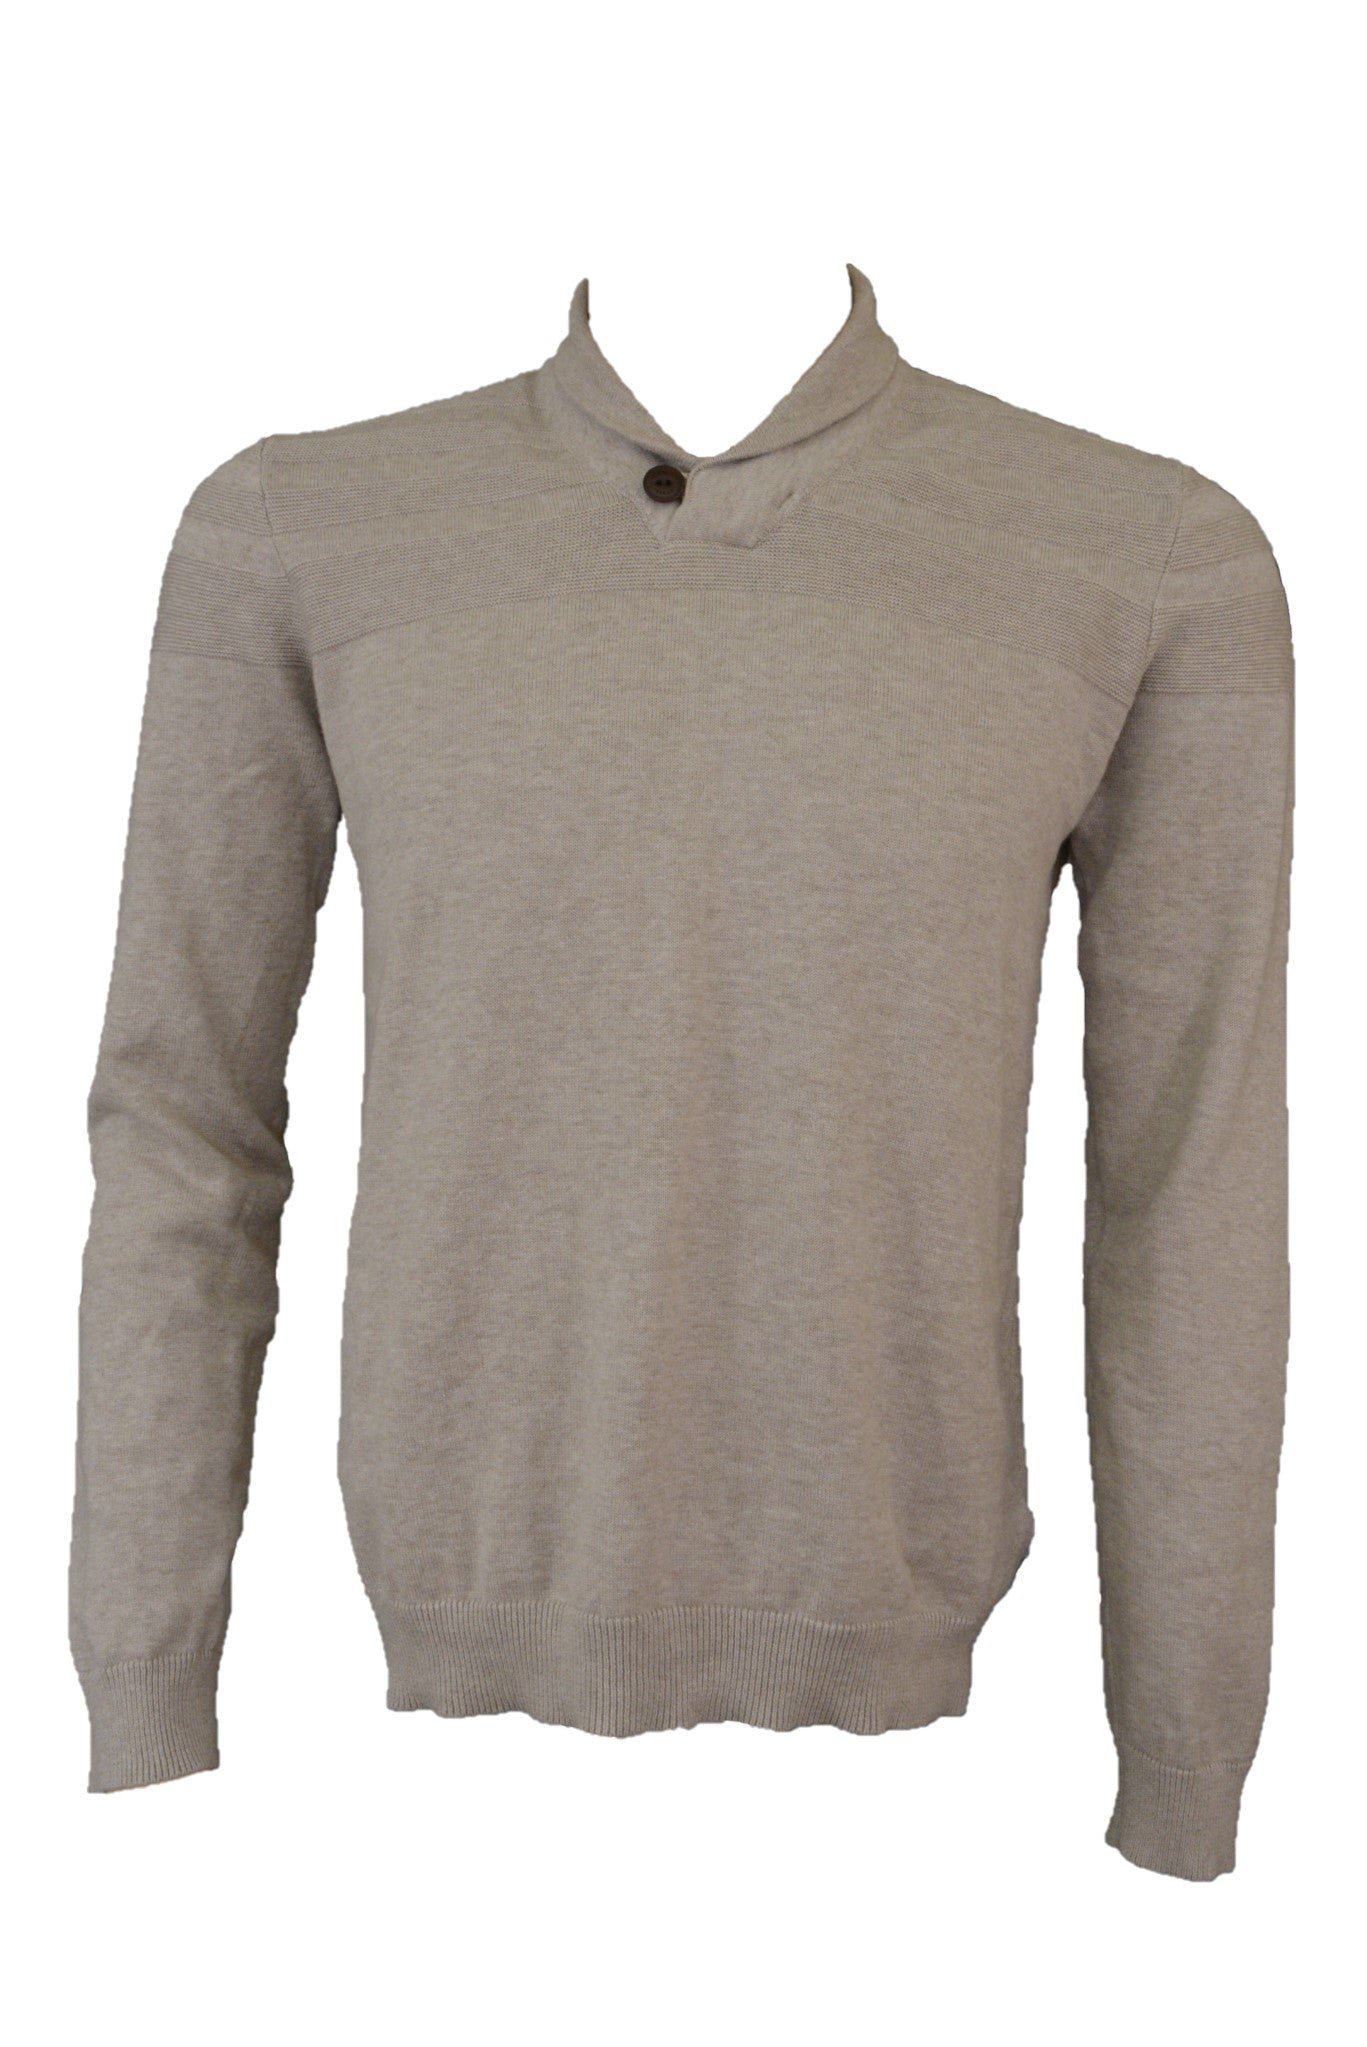 Ted Baker fawn cotton knit jumper with collar